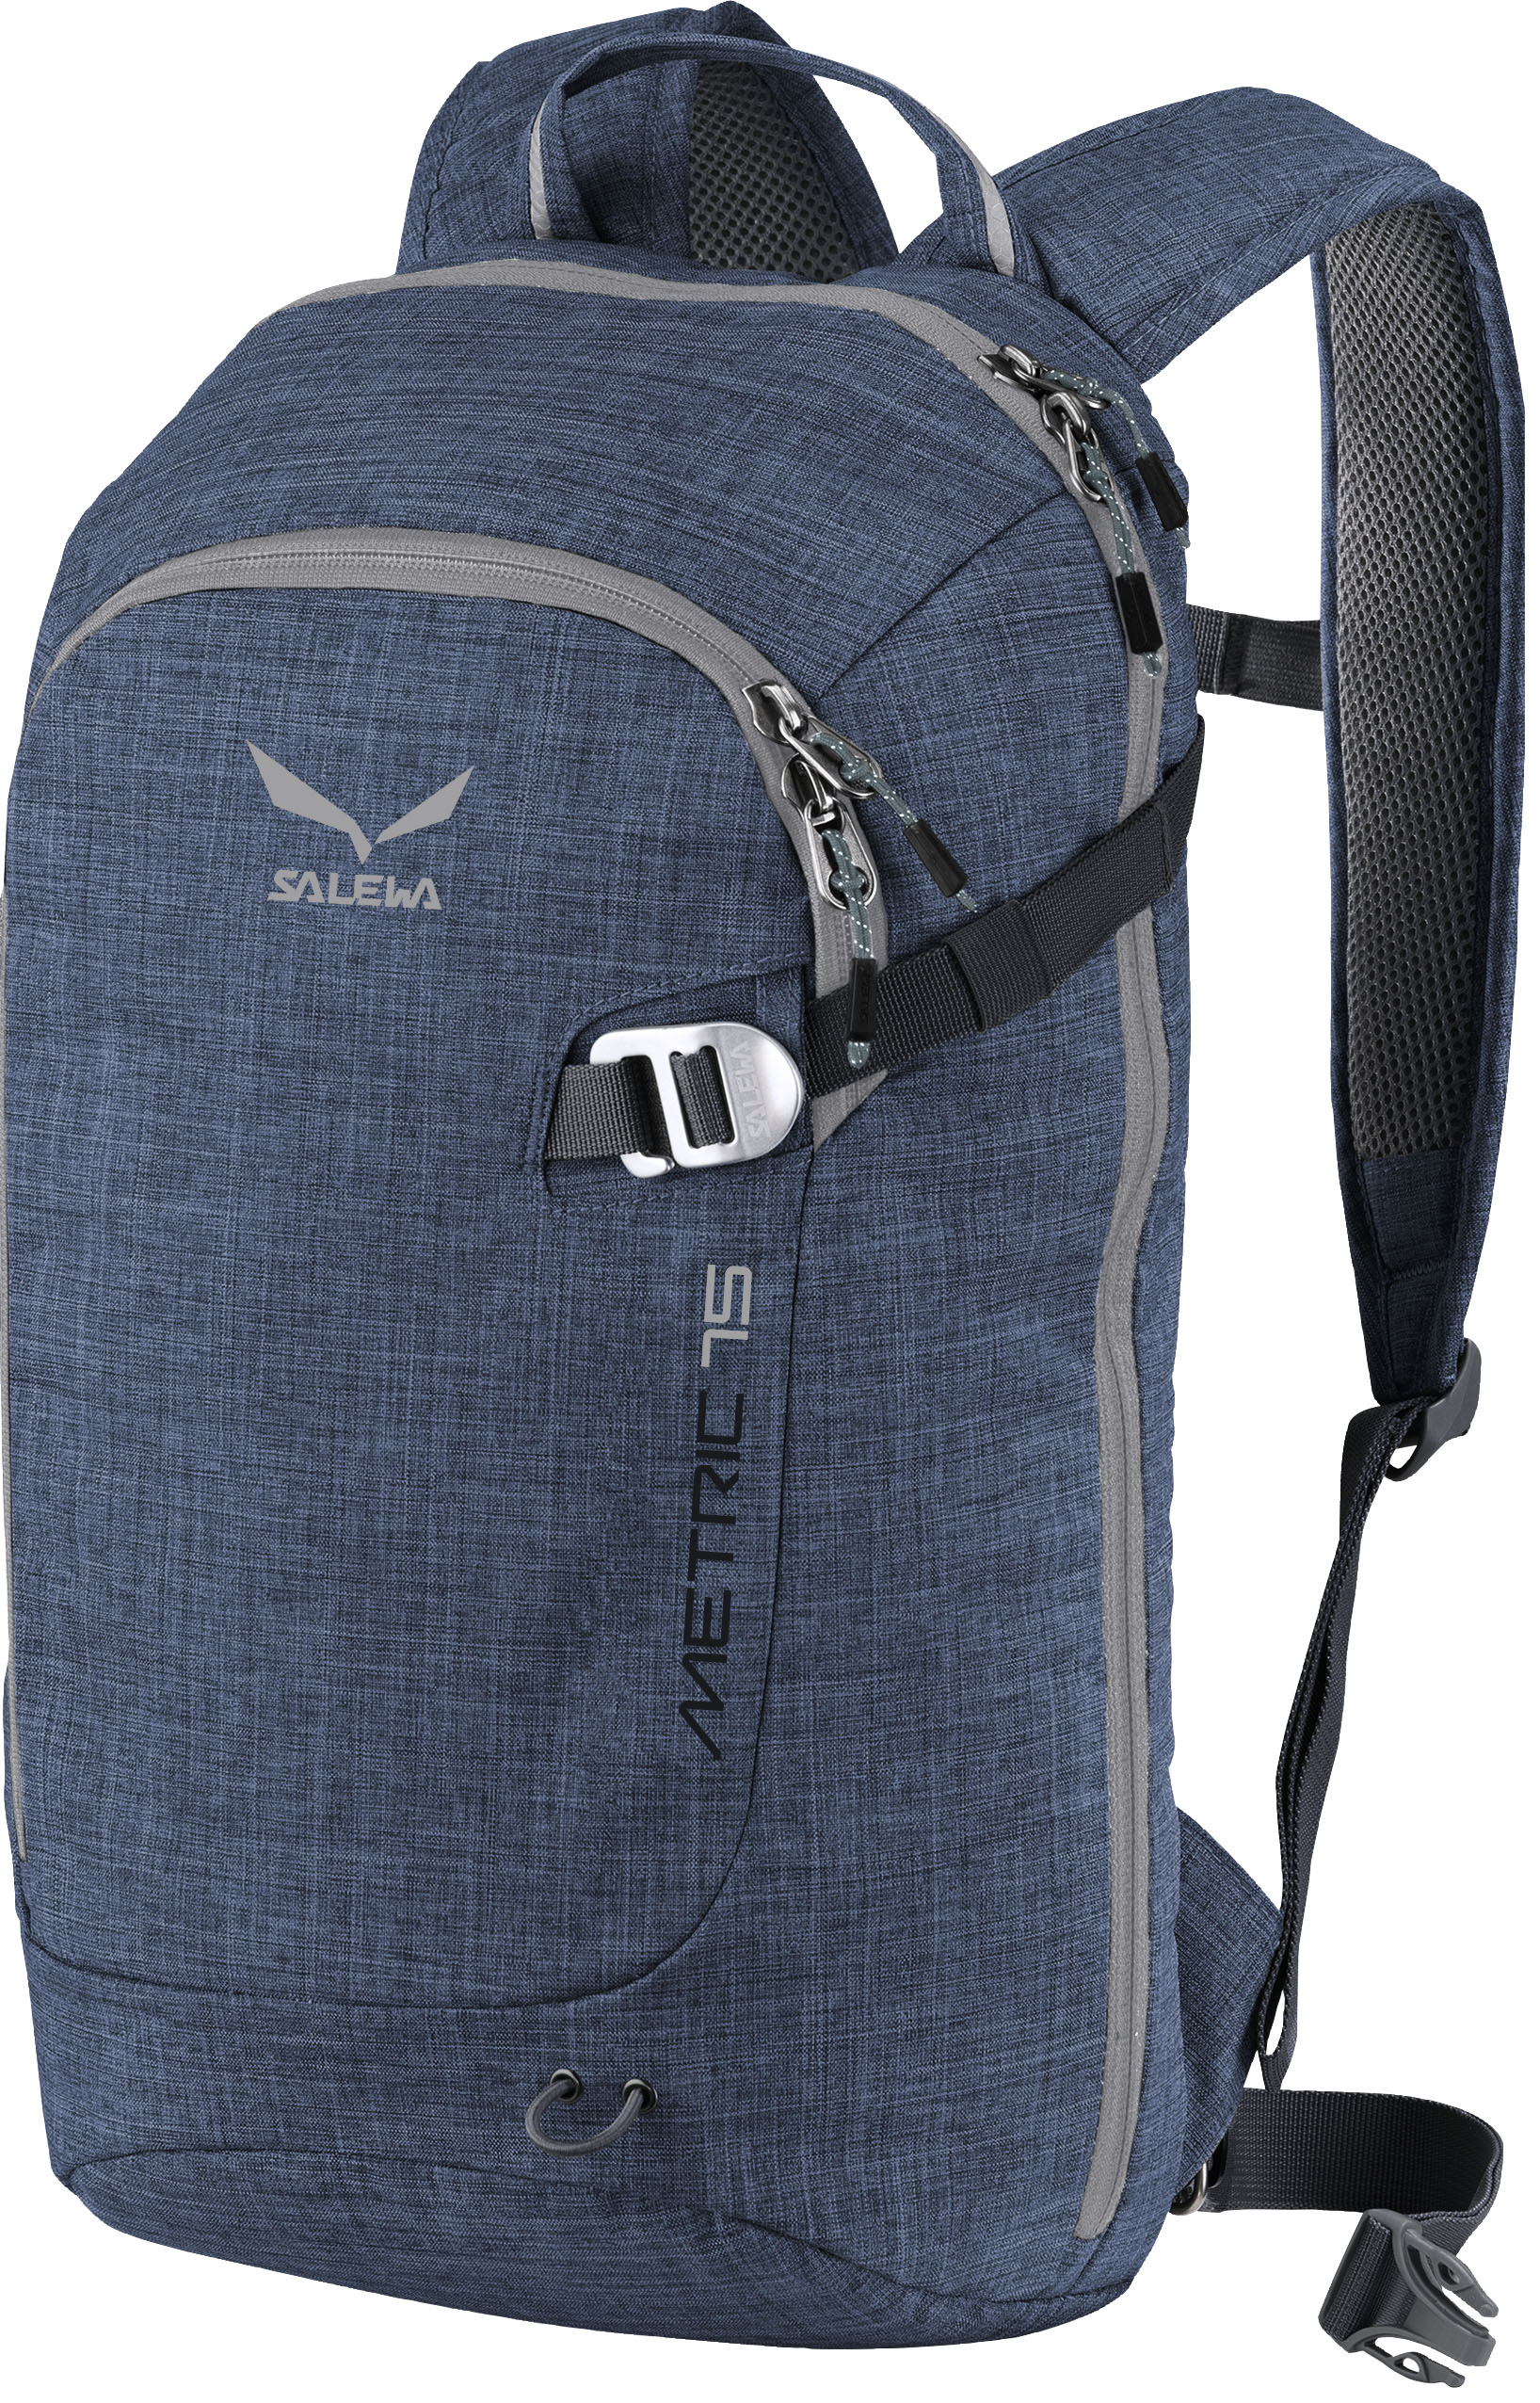 Рюкзак Salewa 2015 Daypacks METRIC 15 BP ICELAND /